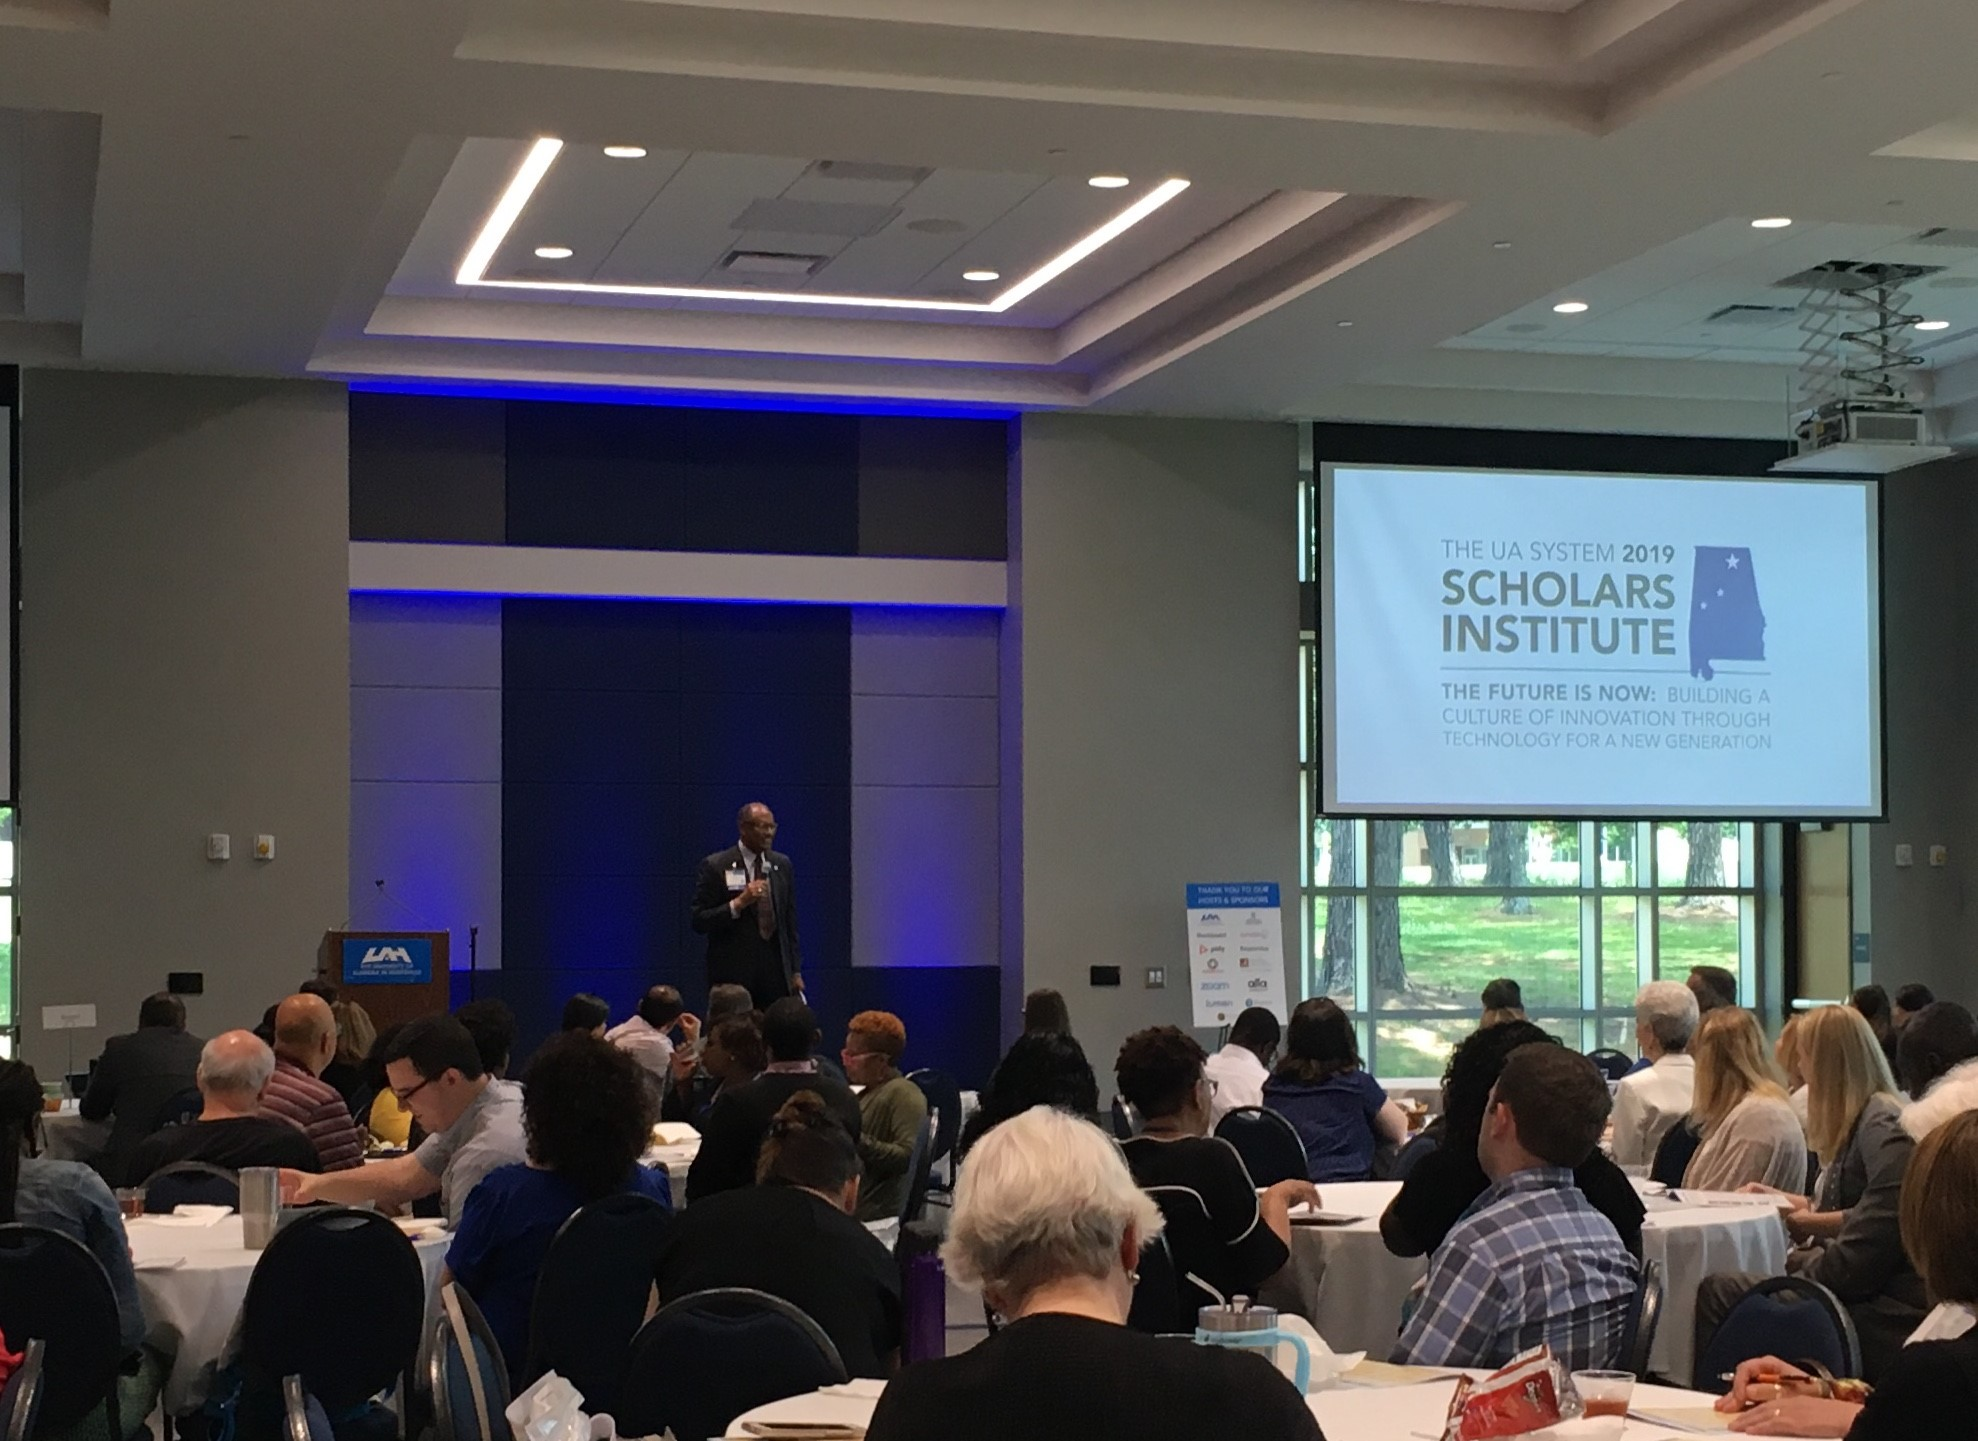 Dr. Charles Nash opens the 2019 system scholars institute